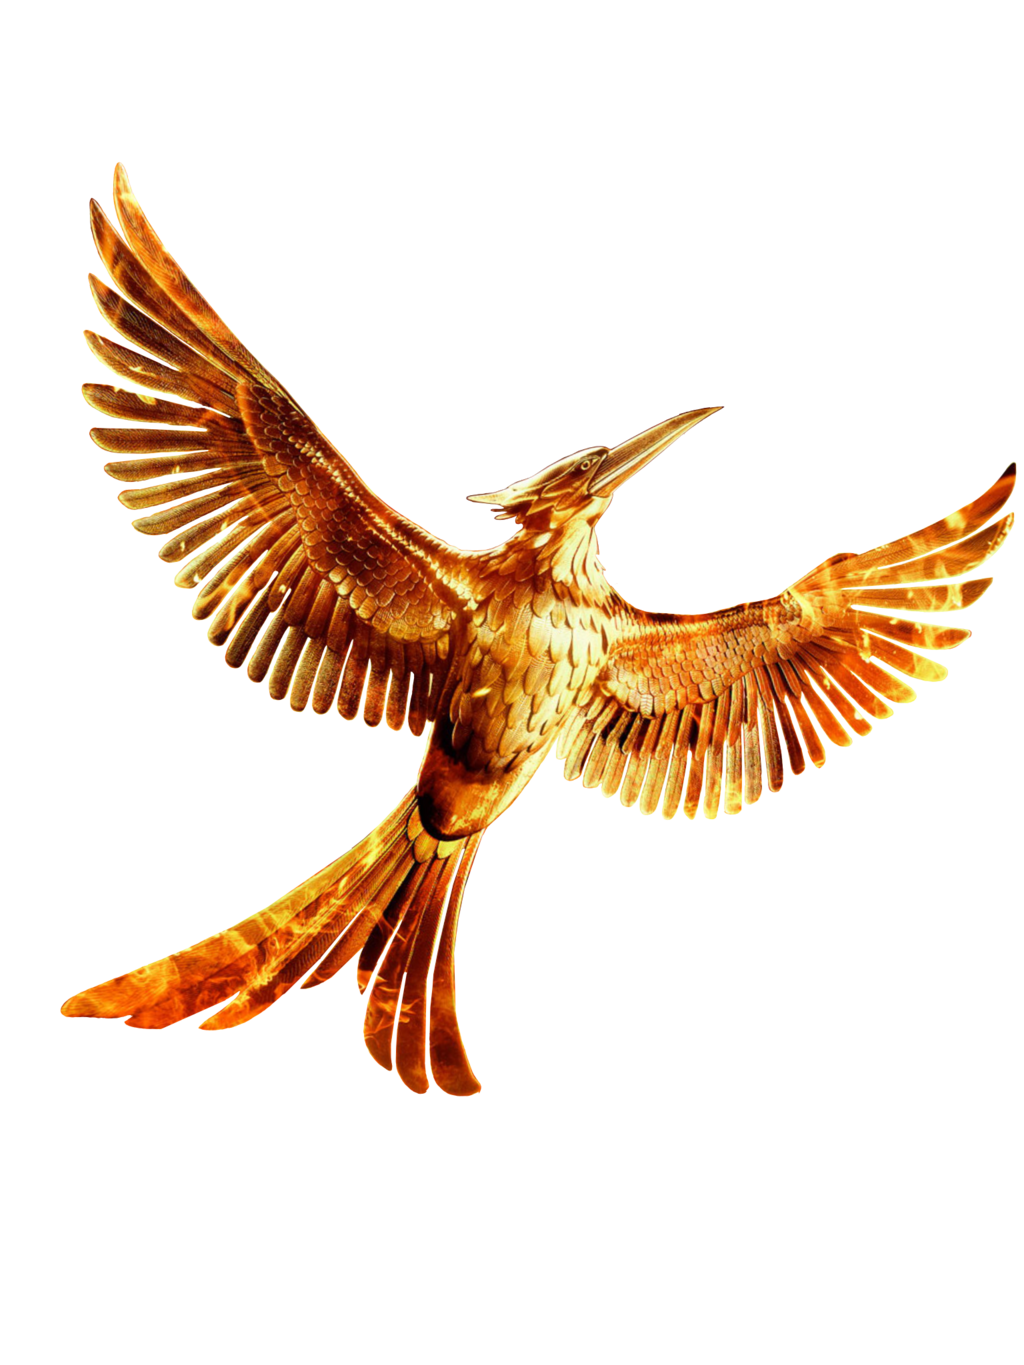 1024x1365 The Hunger Games Mockingjay Part 2 Mockingjay Png By